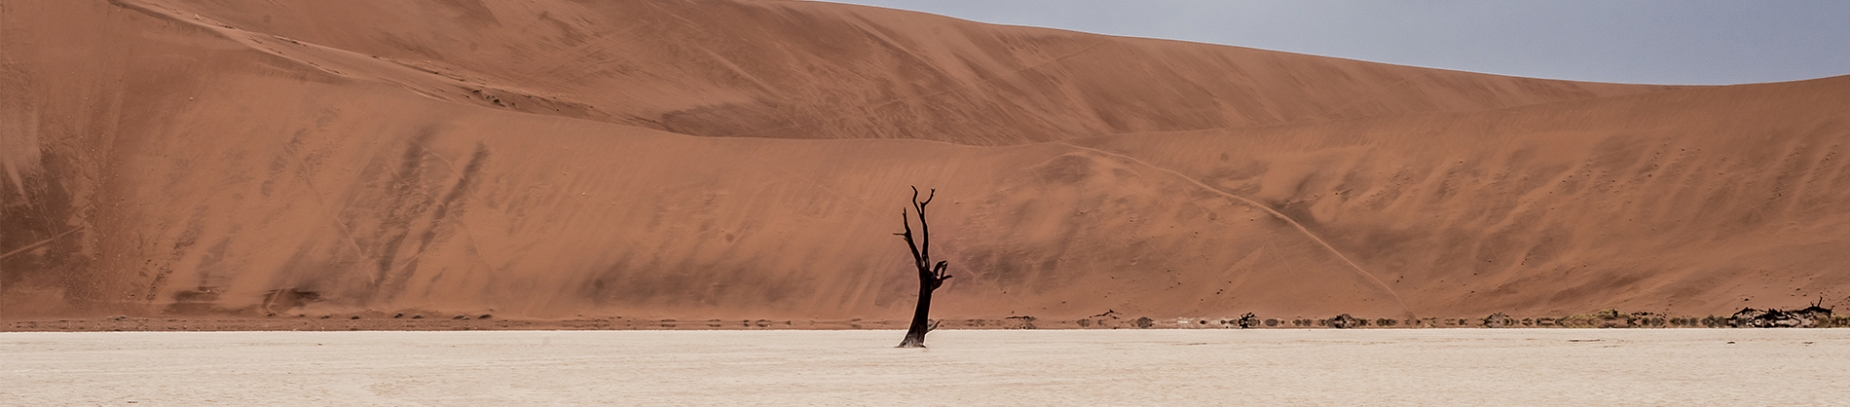 A baron tree in a desert